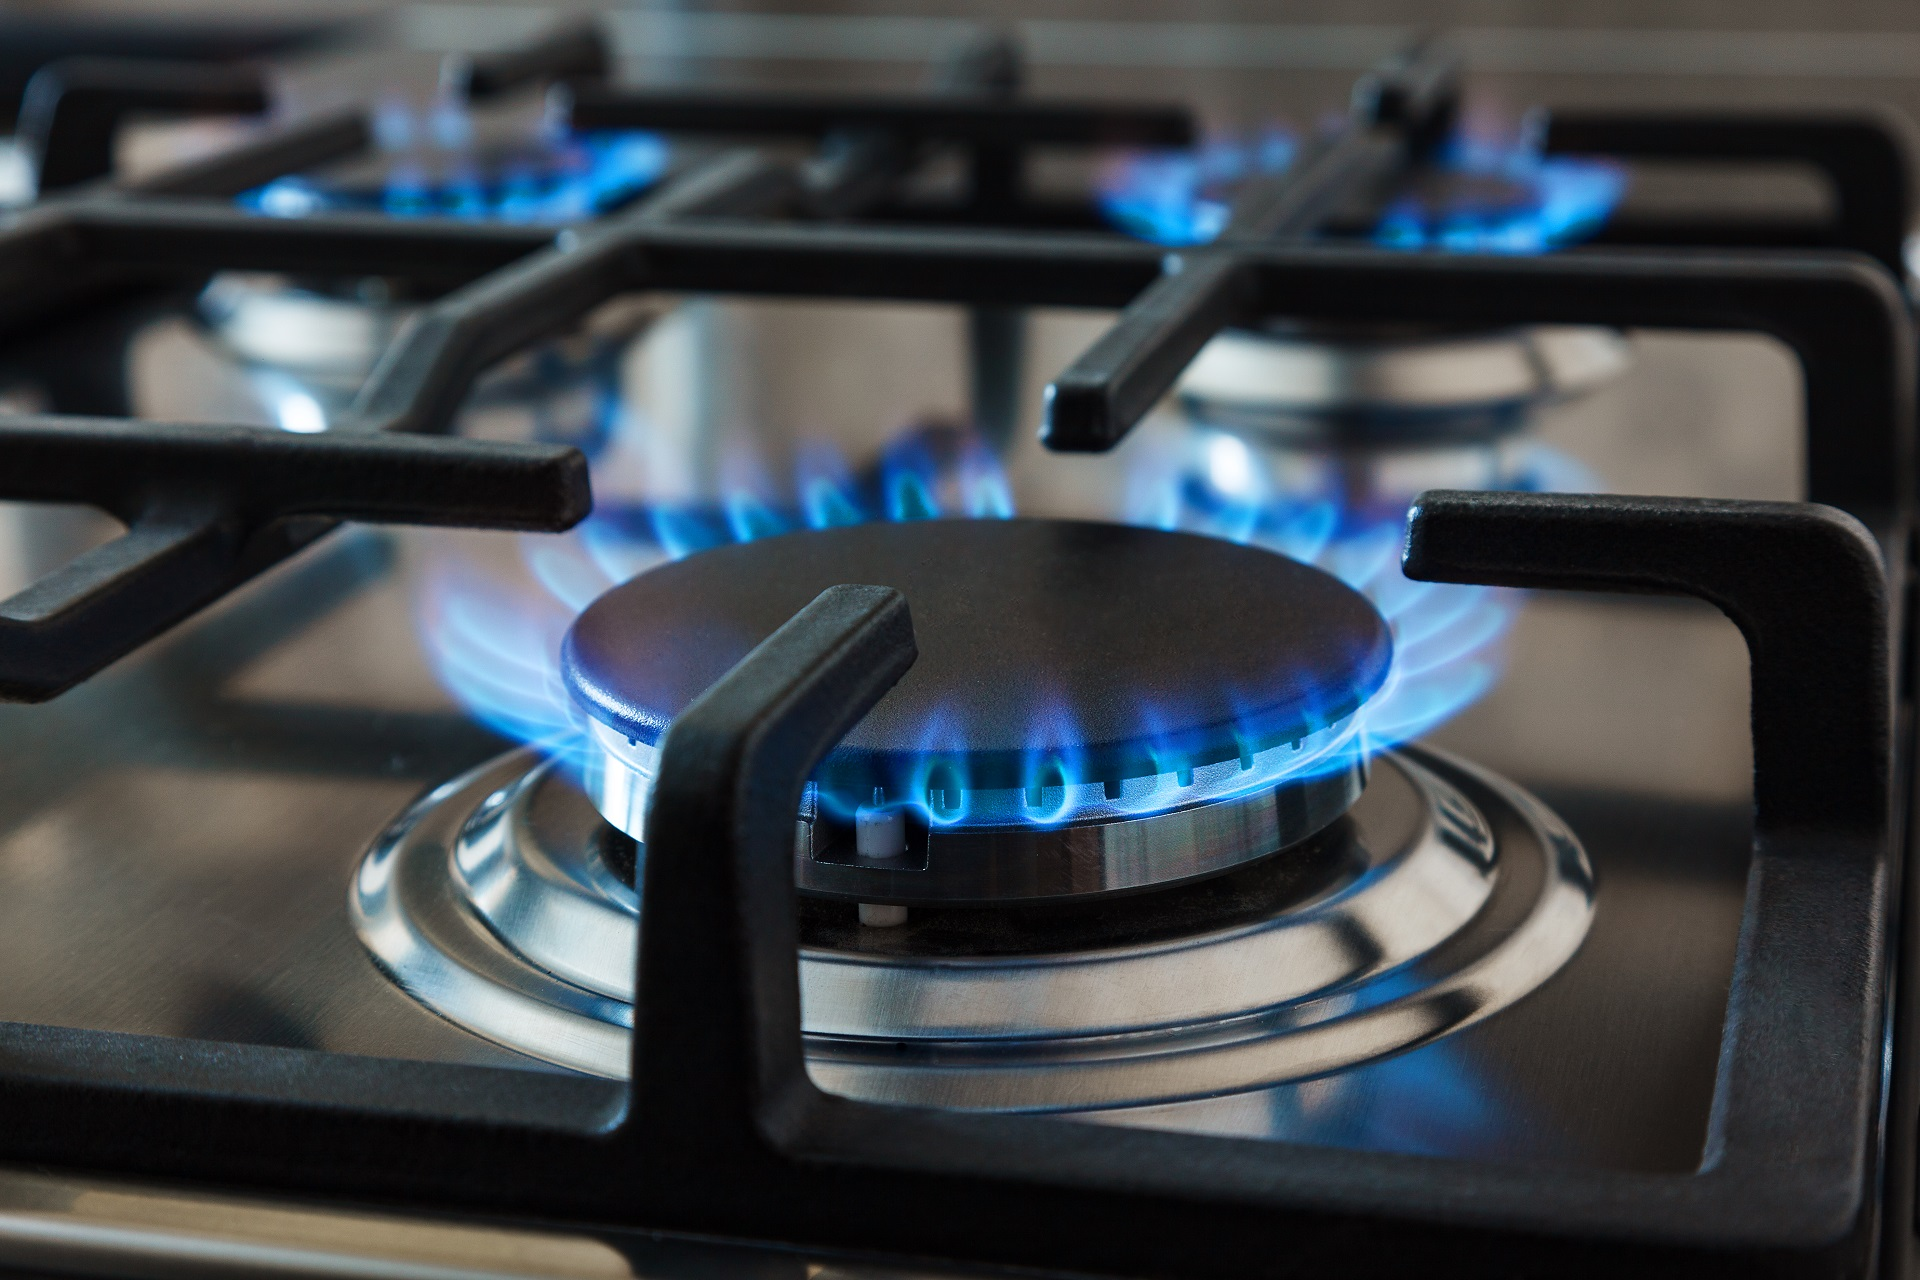 Best Professional Gas Range For The